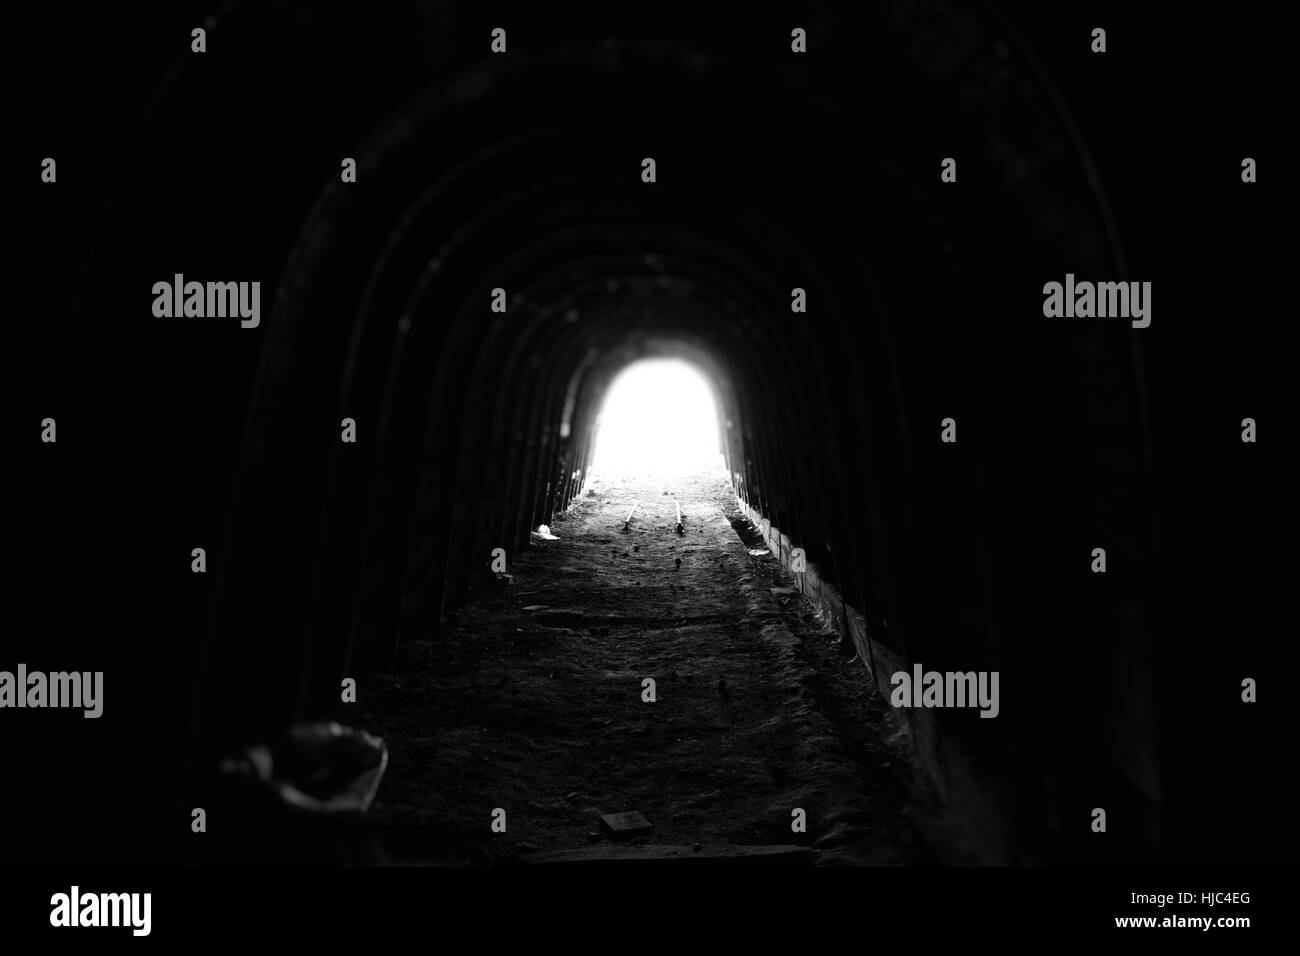 Light at the end of the tunnel! - Stock Image